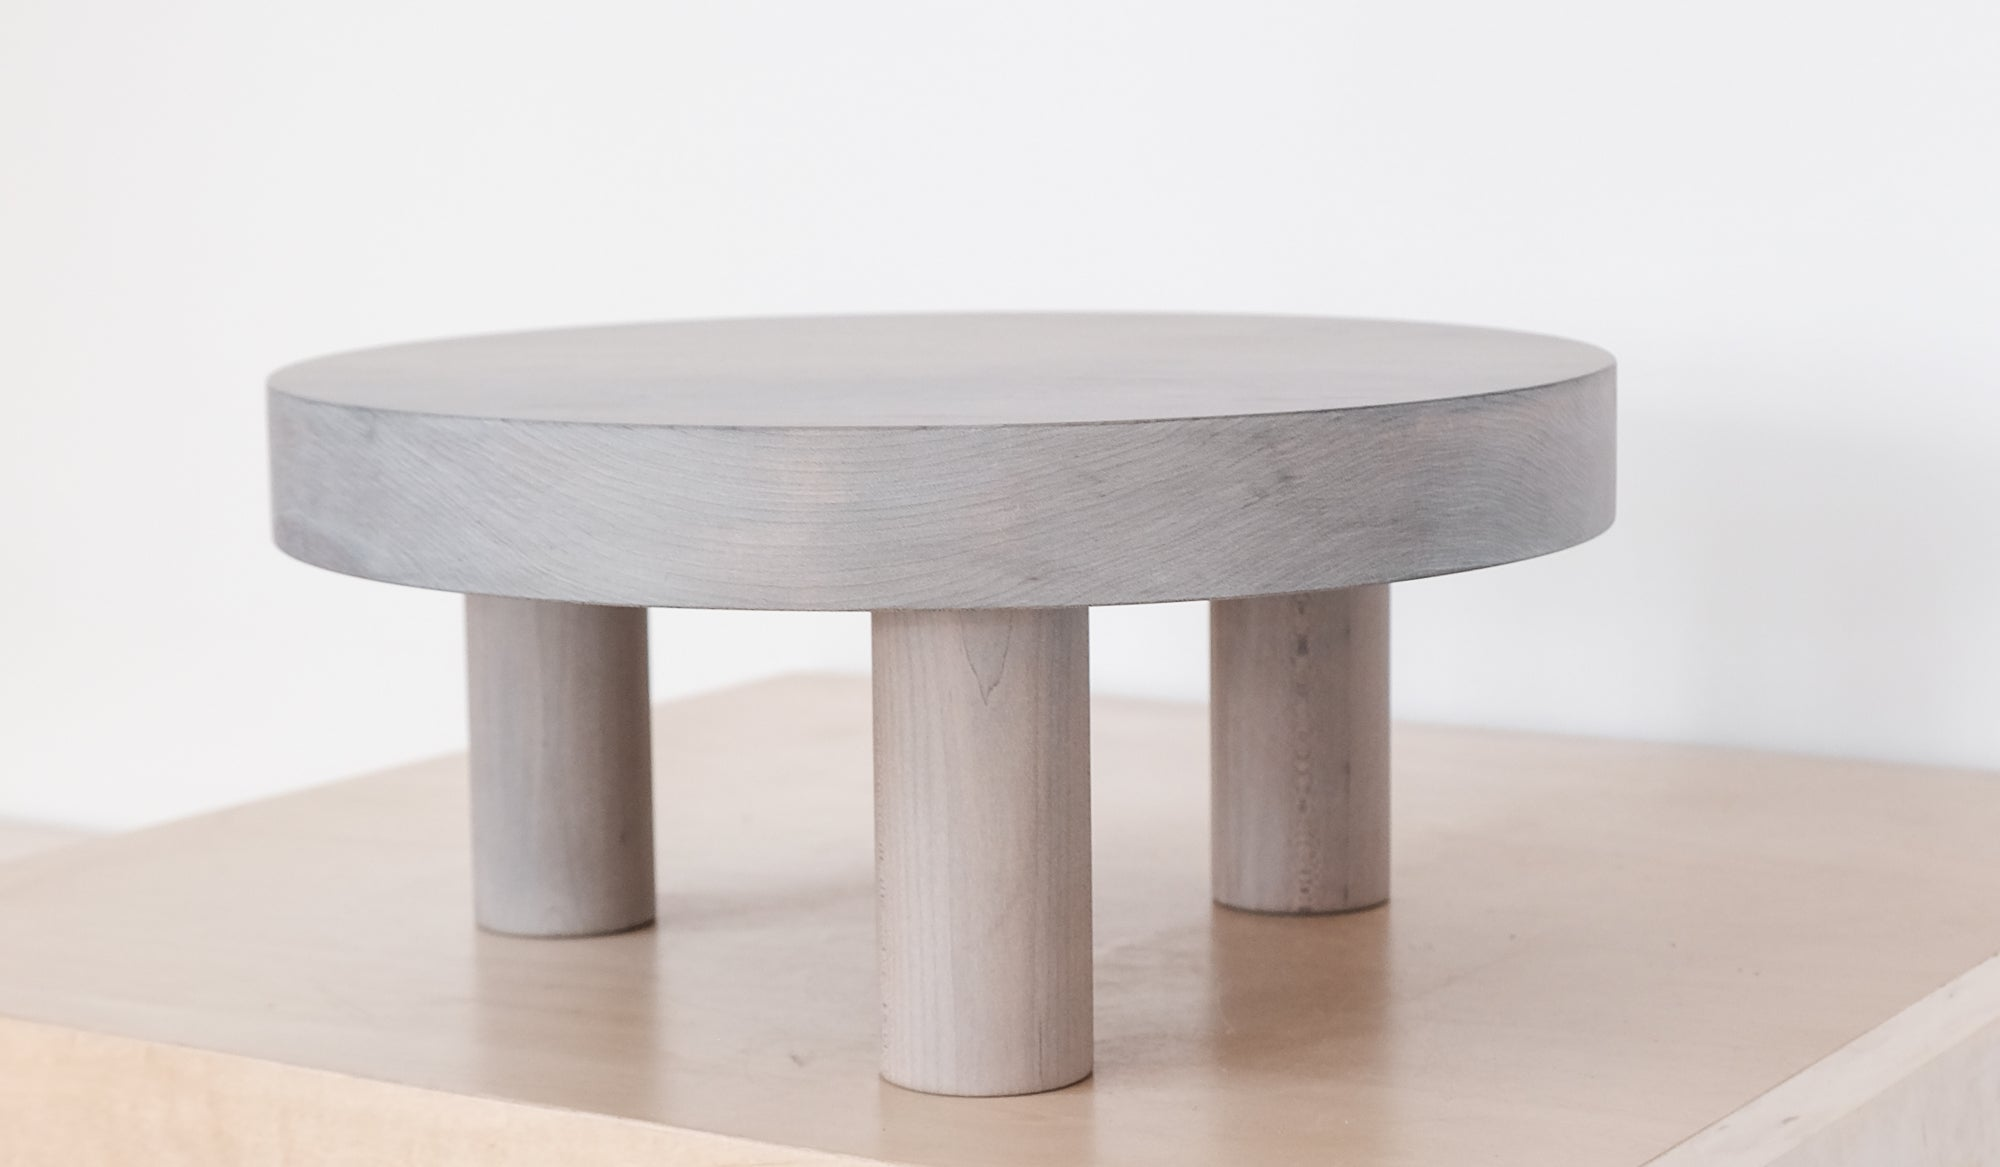 Matthew Philip Williams Low Table: Oxidized Maple, Home Goods, Matthew Philip Williams, SPARTAN SHOP